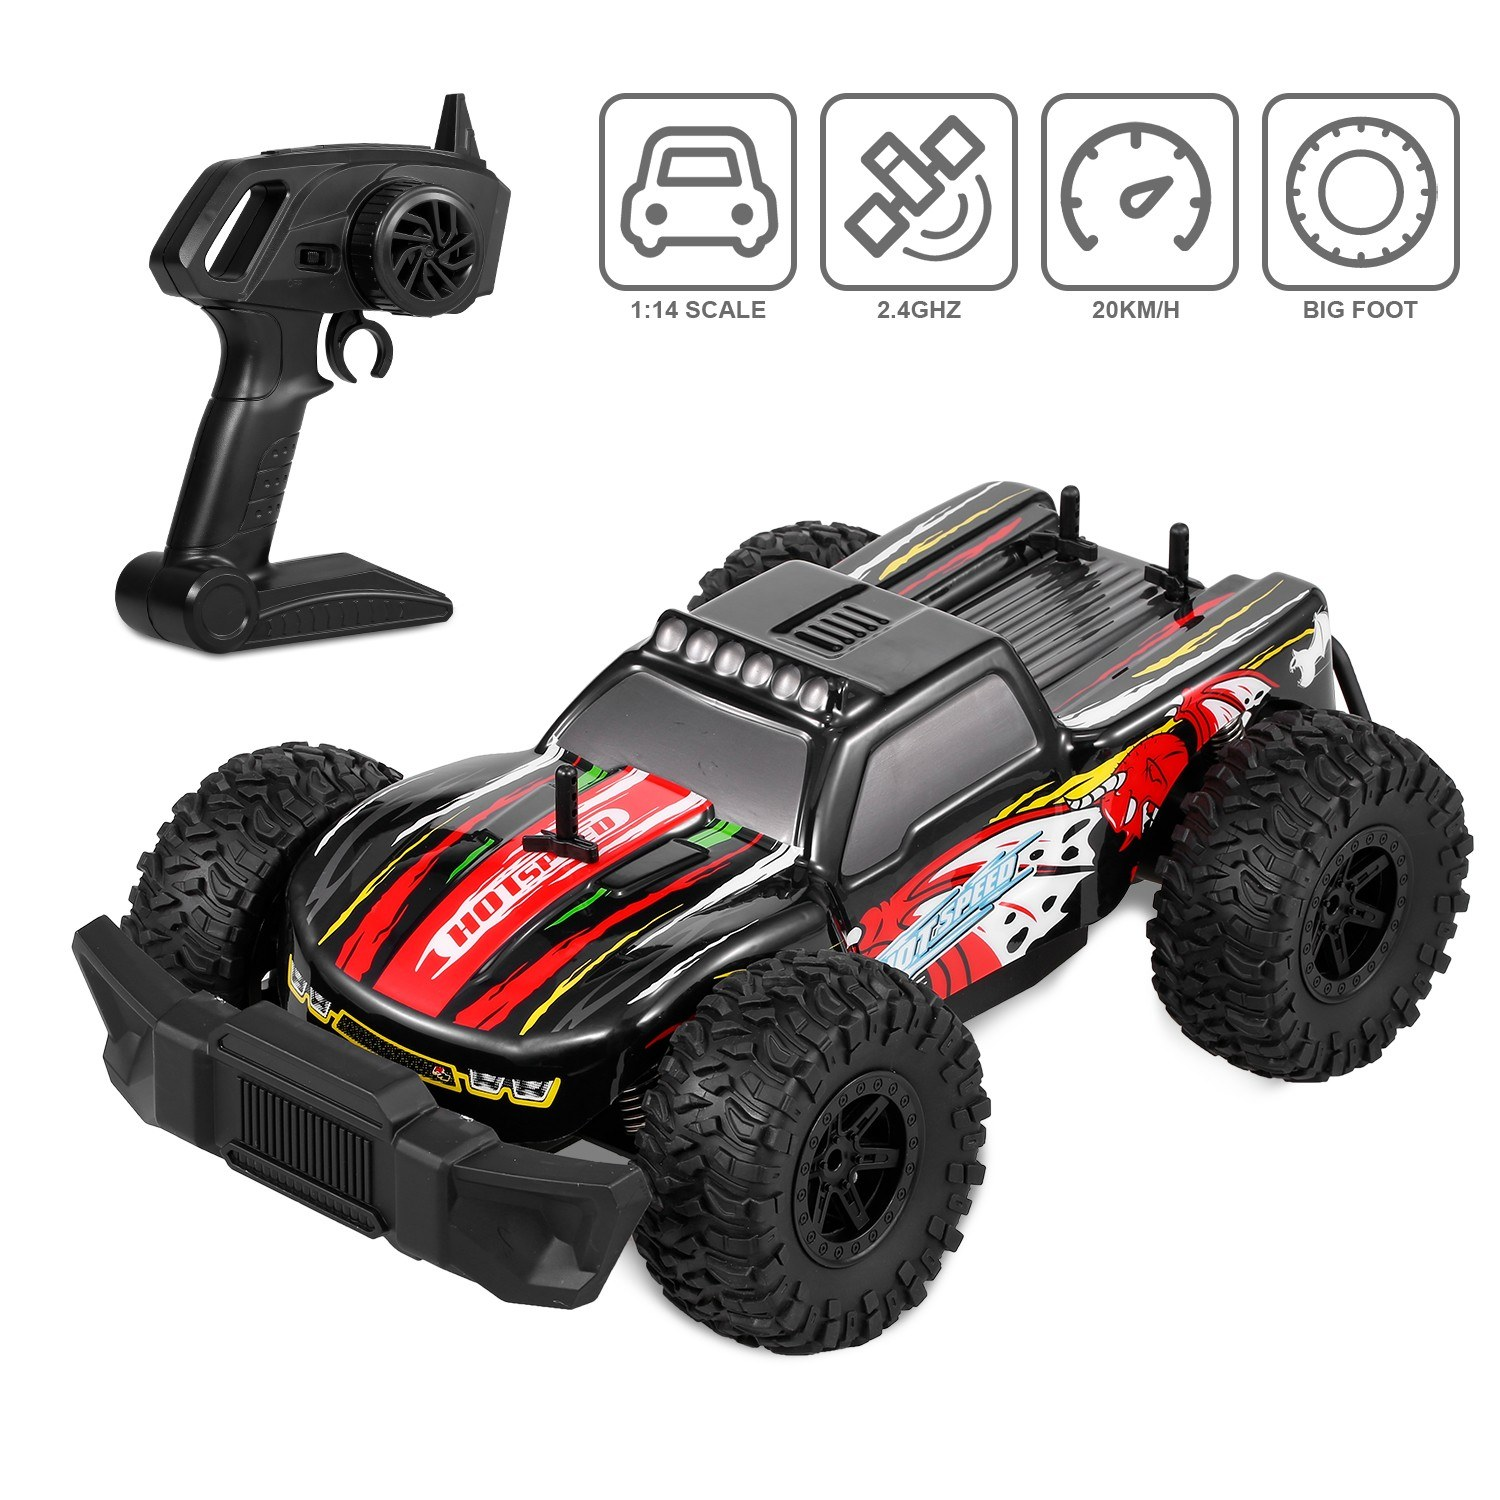 K14-1 1/14 RC Car 2.4G Big Foot High Speed Racing Car RC Buggy on Road off Road Drift Car for Kids